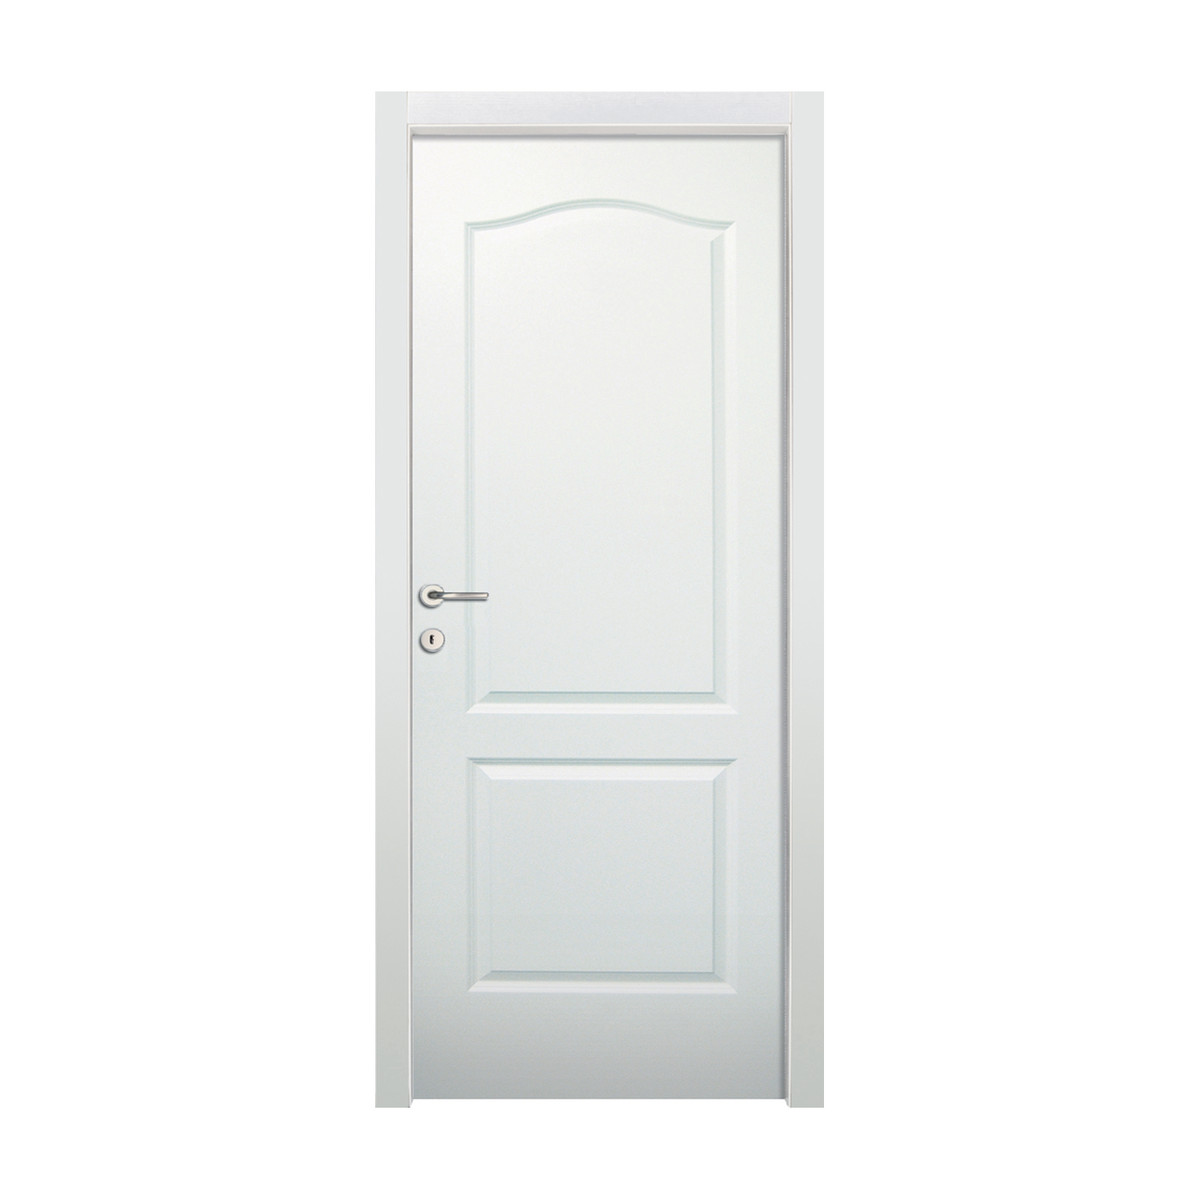 Porta da interno battente ipanema bianco 80 x h 210 cm dx for Porta finestra leroy merlin